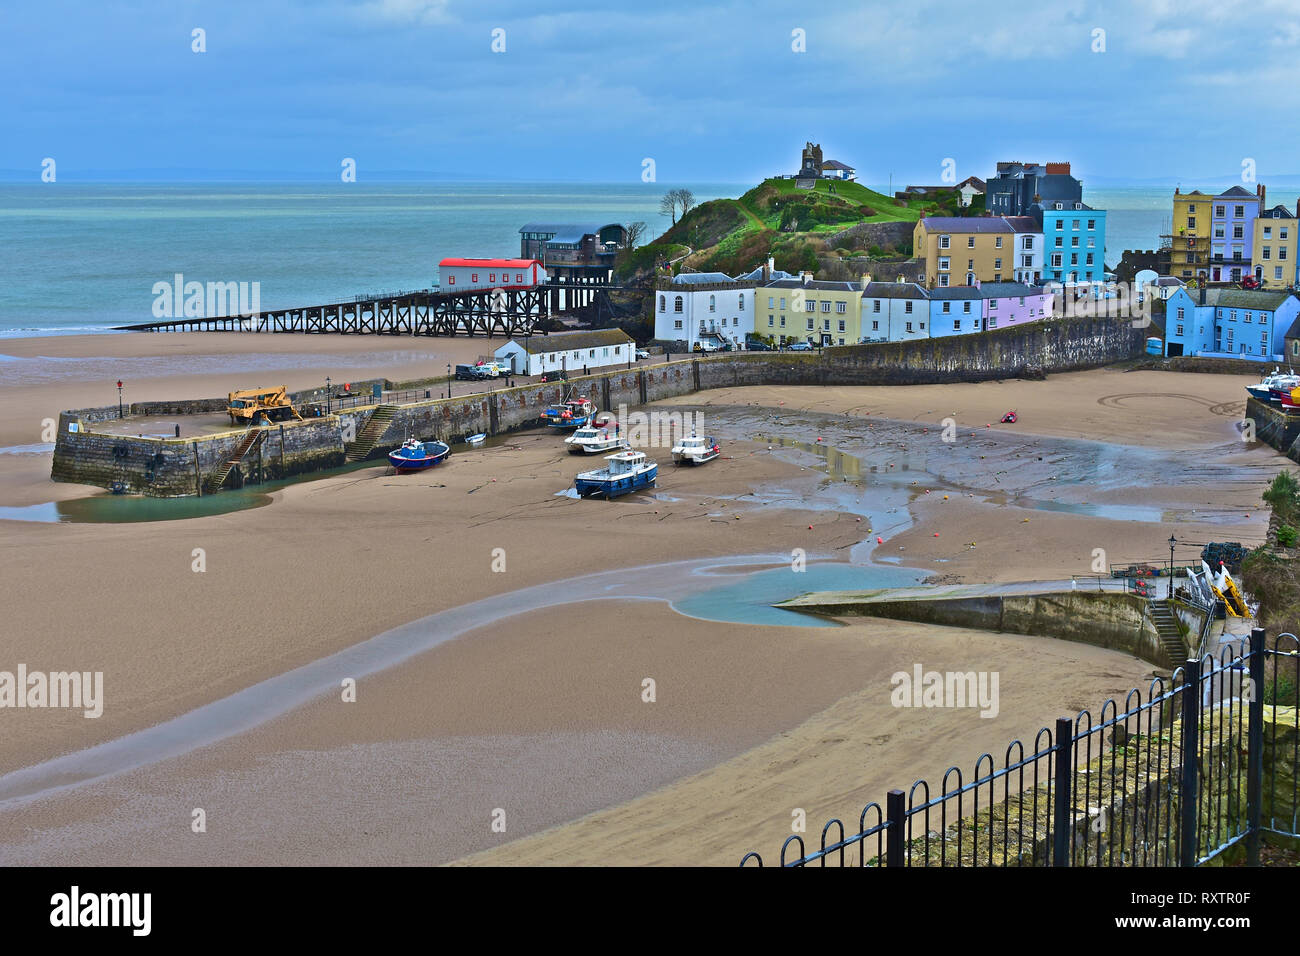 The pretty harbour at Tenby, low tide in Winter. Lifeboat stations old & new  with pastel coloured houses overlooking the sandy North Beach.S.Wales Stock Photo